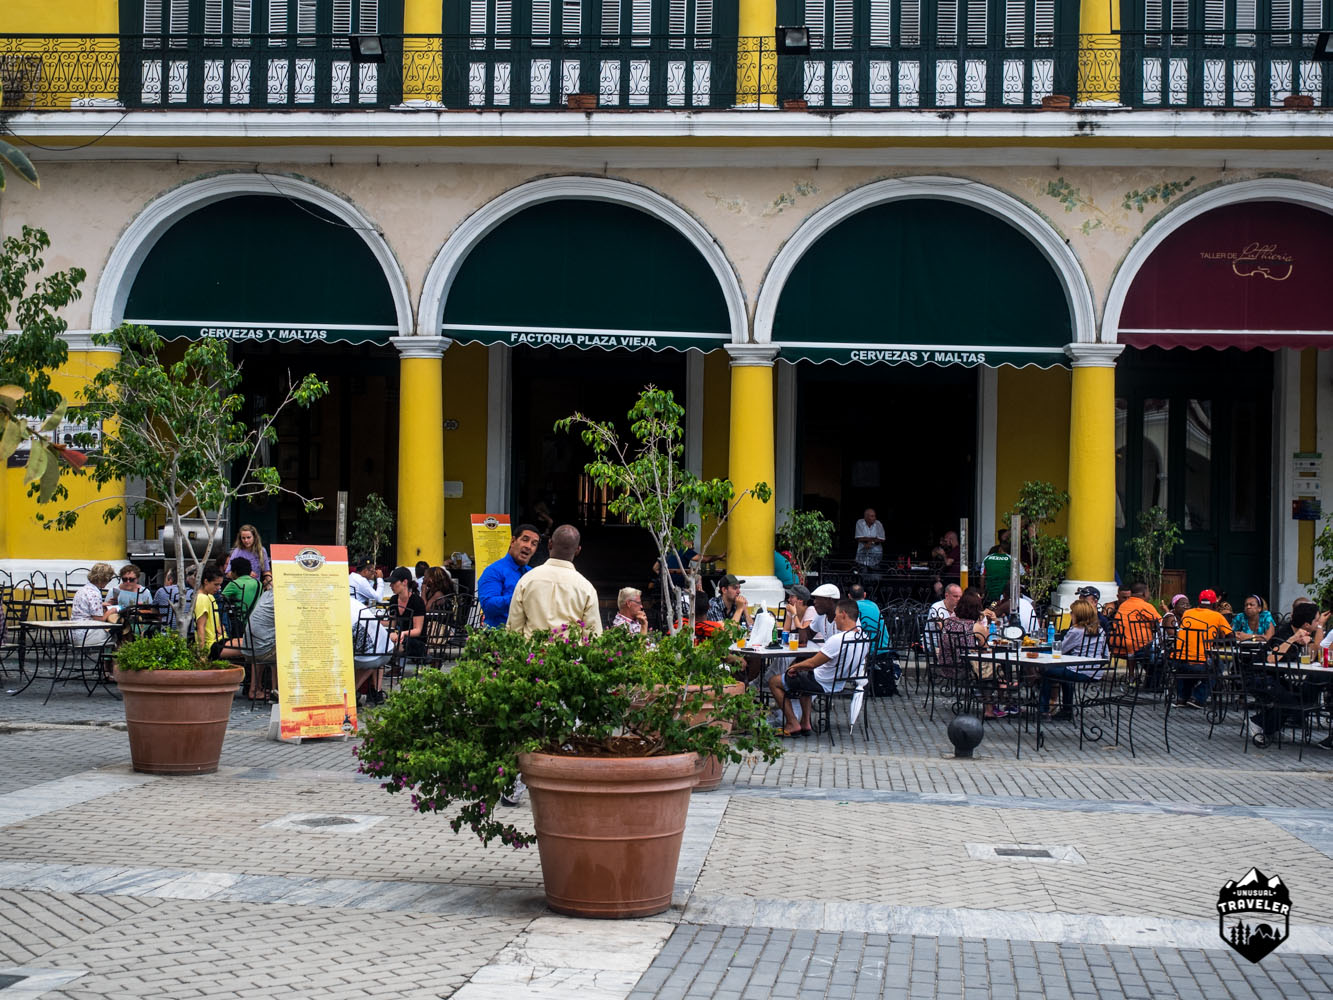 The outside area at Factoria Plaza Vieja in Havana craft beer